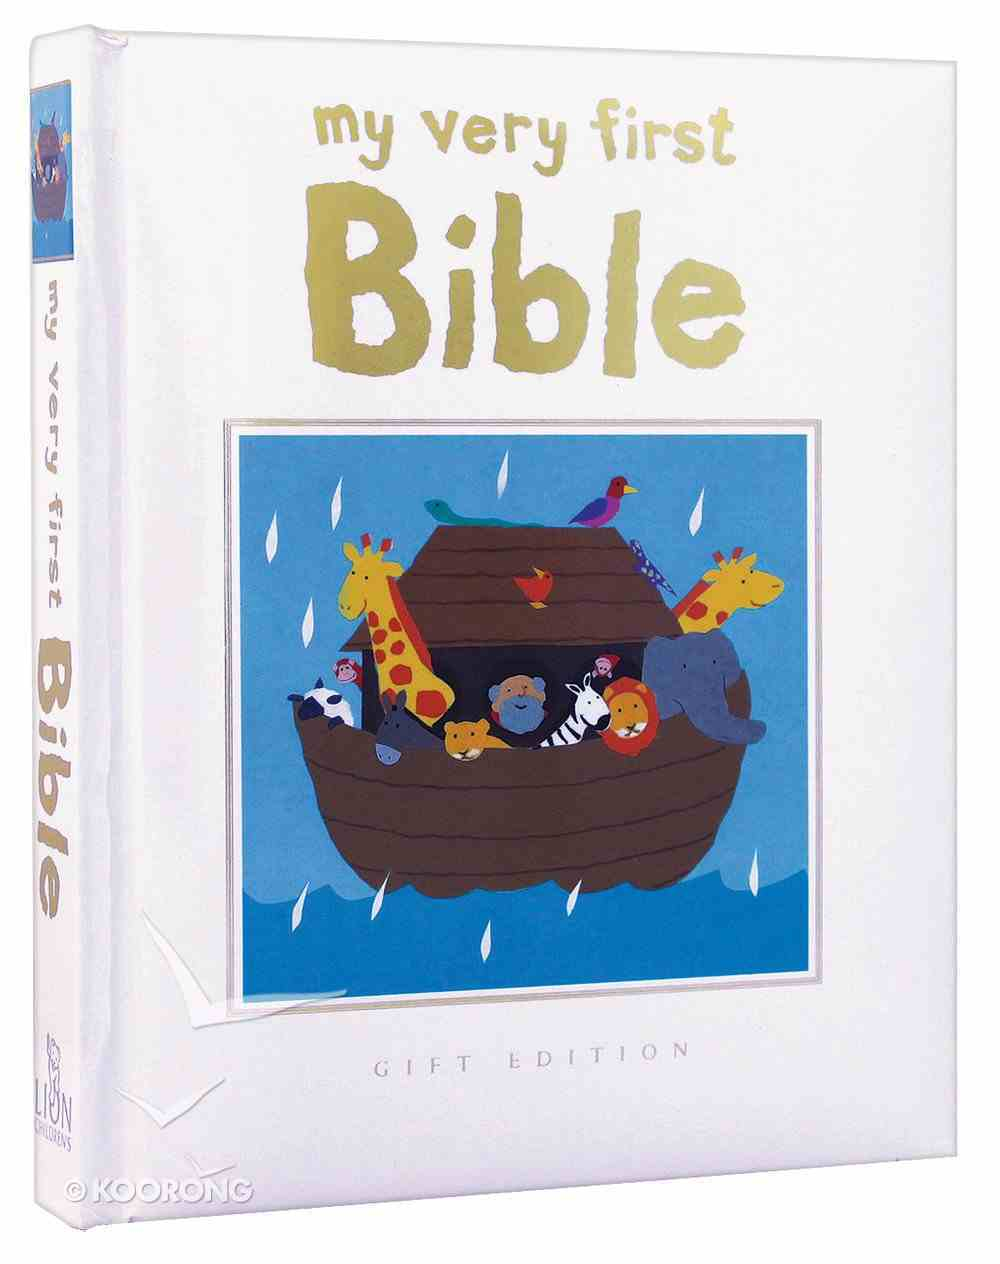 My Very First Bible (Gift Edition) Hardback